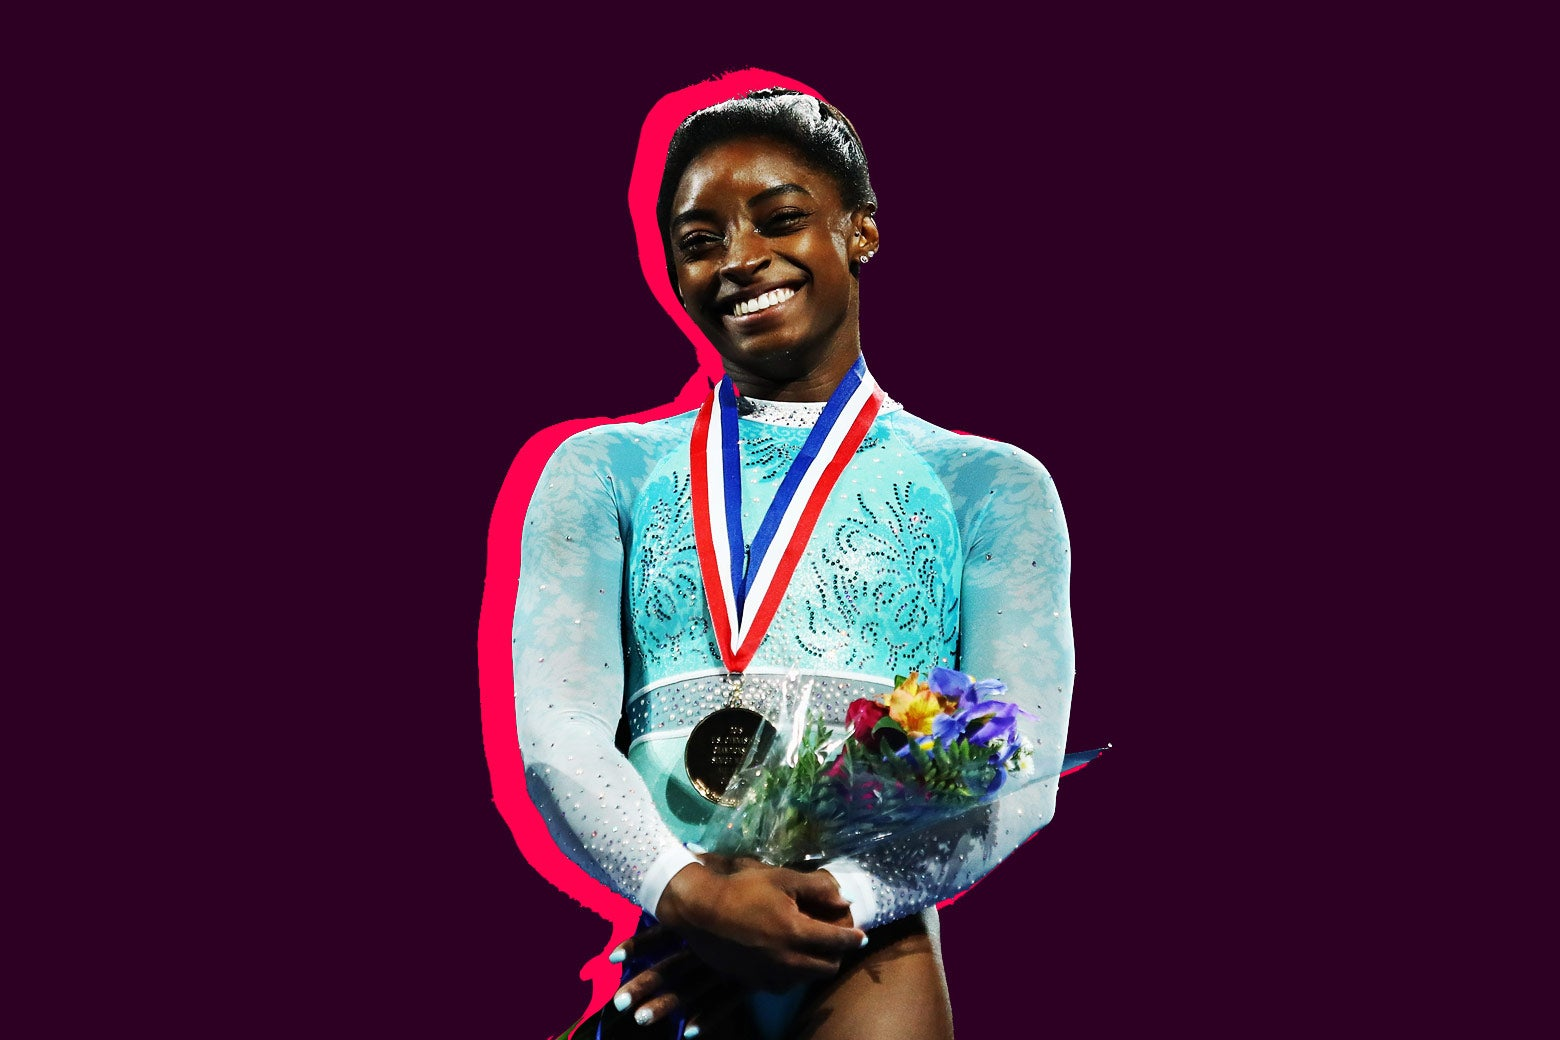 Simone Biles stands on the podium after winning her record fifth U.S. all-around title at the U.S. Gymnastics Championships 2018 in Boston on Sunday.